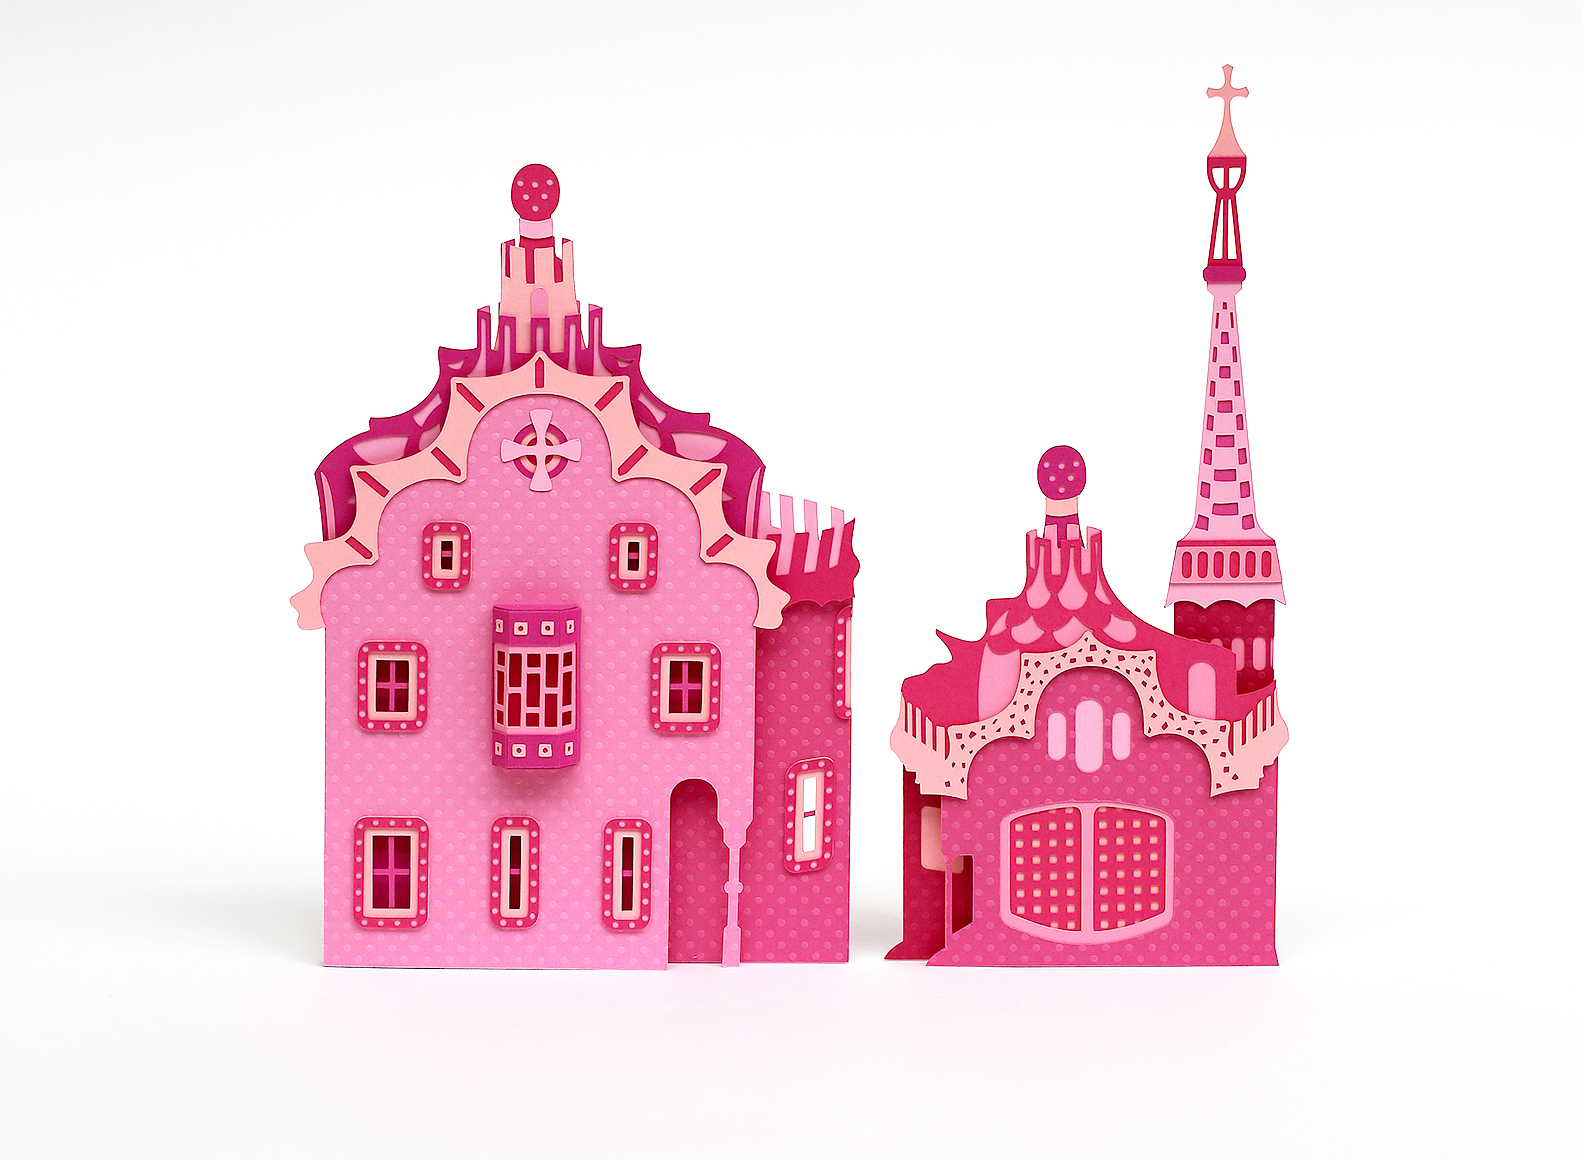 Barcelona's Architectural Landmarks Crafted in Pink Paper - Freixenet - Parc Guell